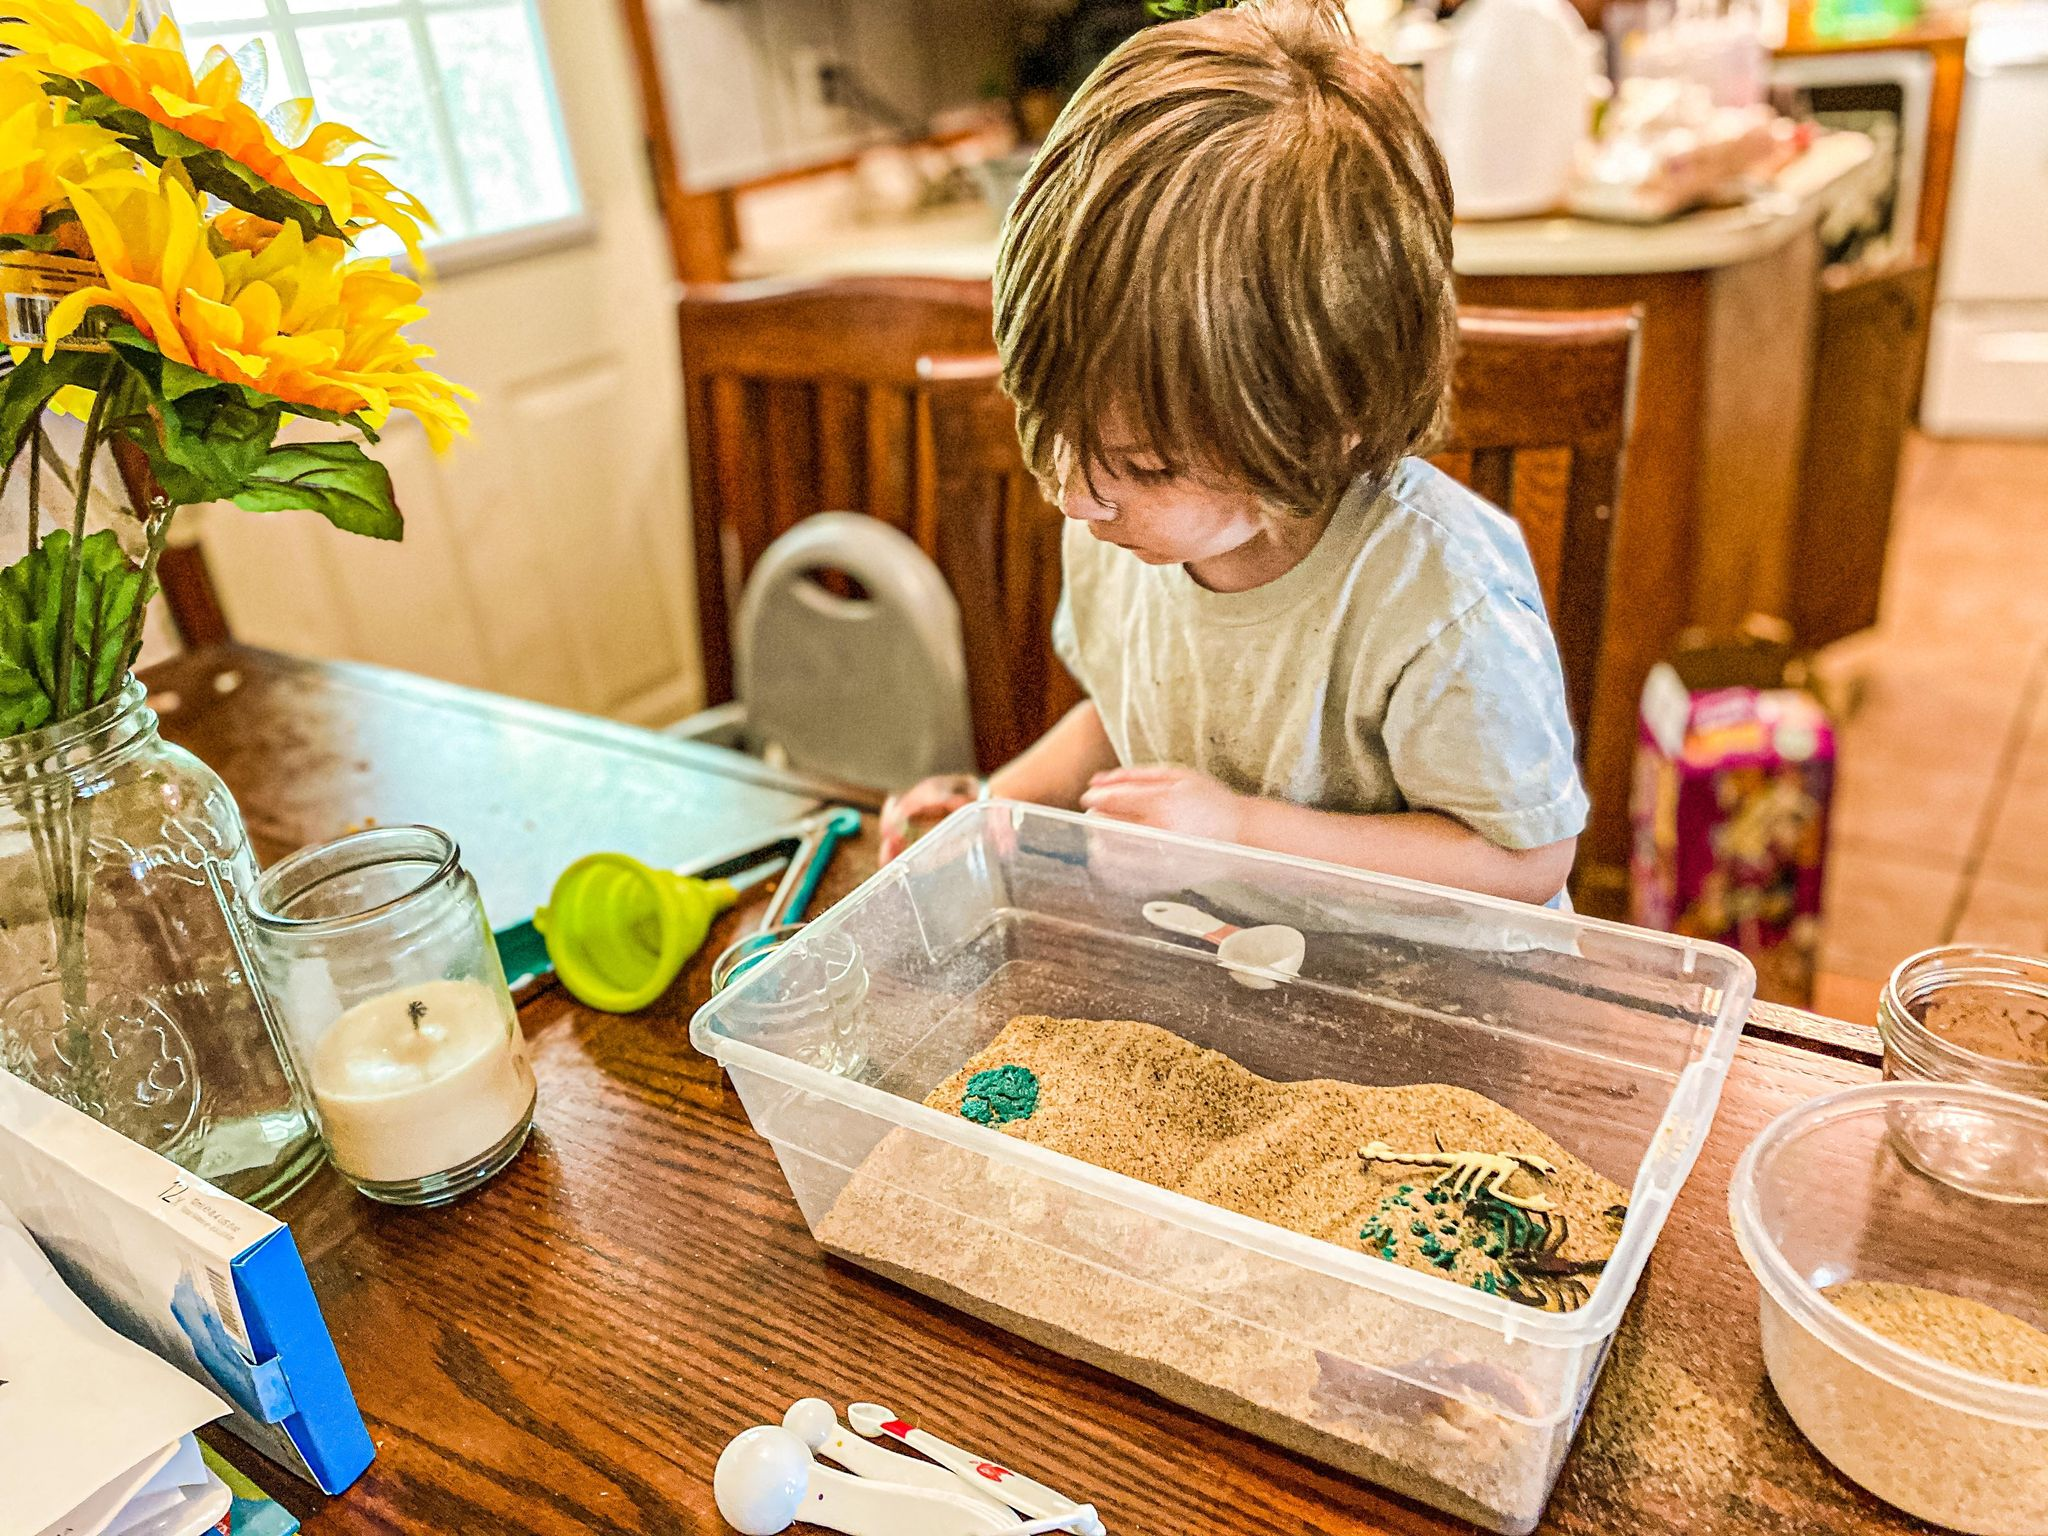 Desert Sensory Bin Activity for Preschoolers